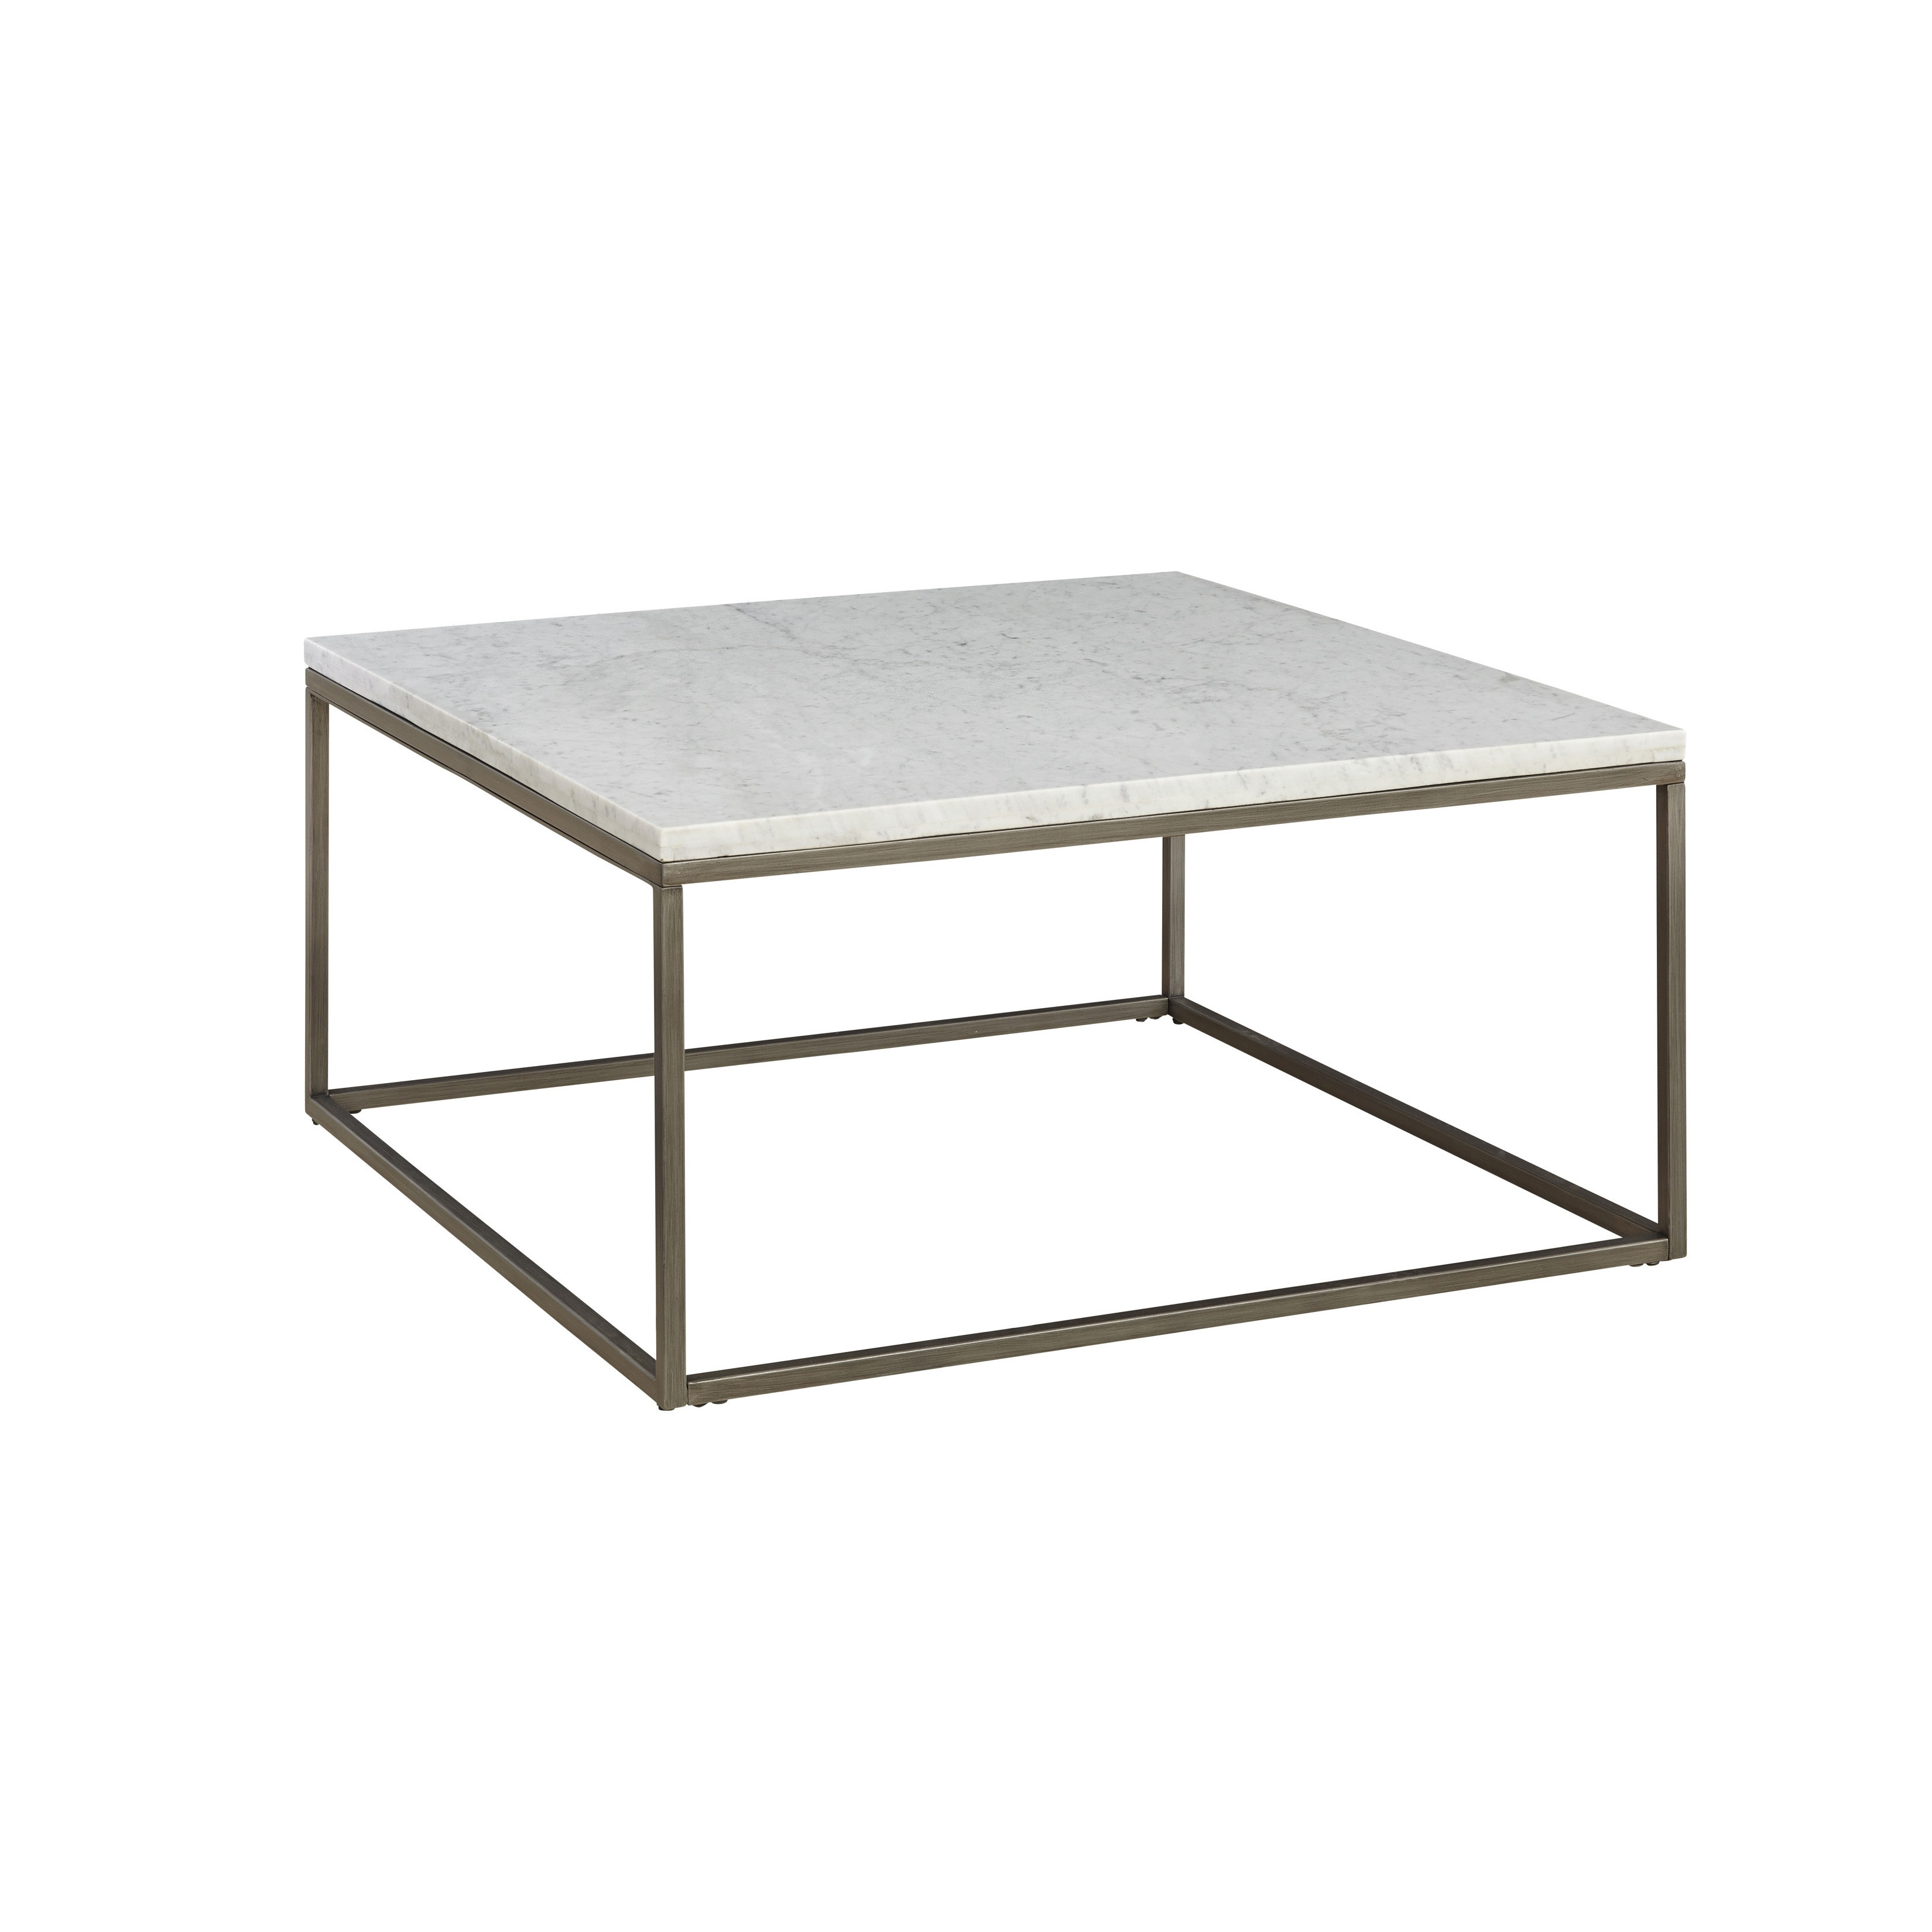 Superbe Shop Alana White Marble Square Coffee Table   Free Shipping Today    Overstock.com   14340007